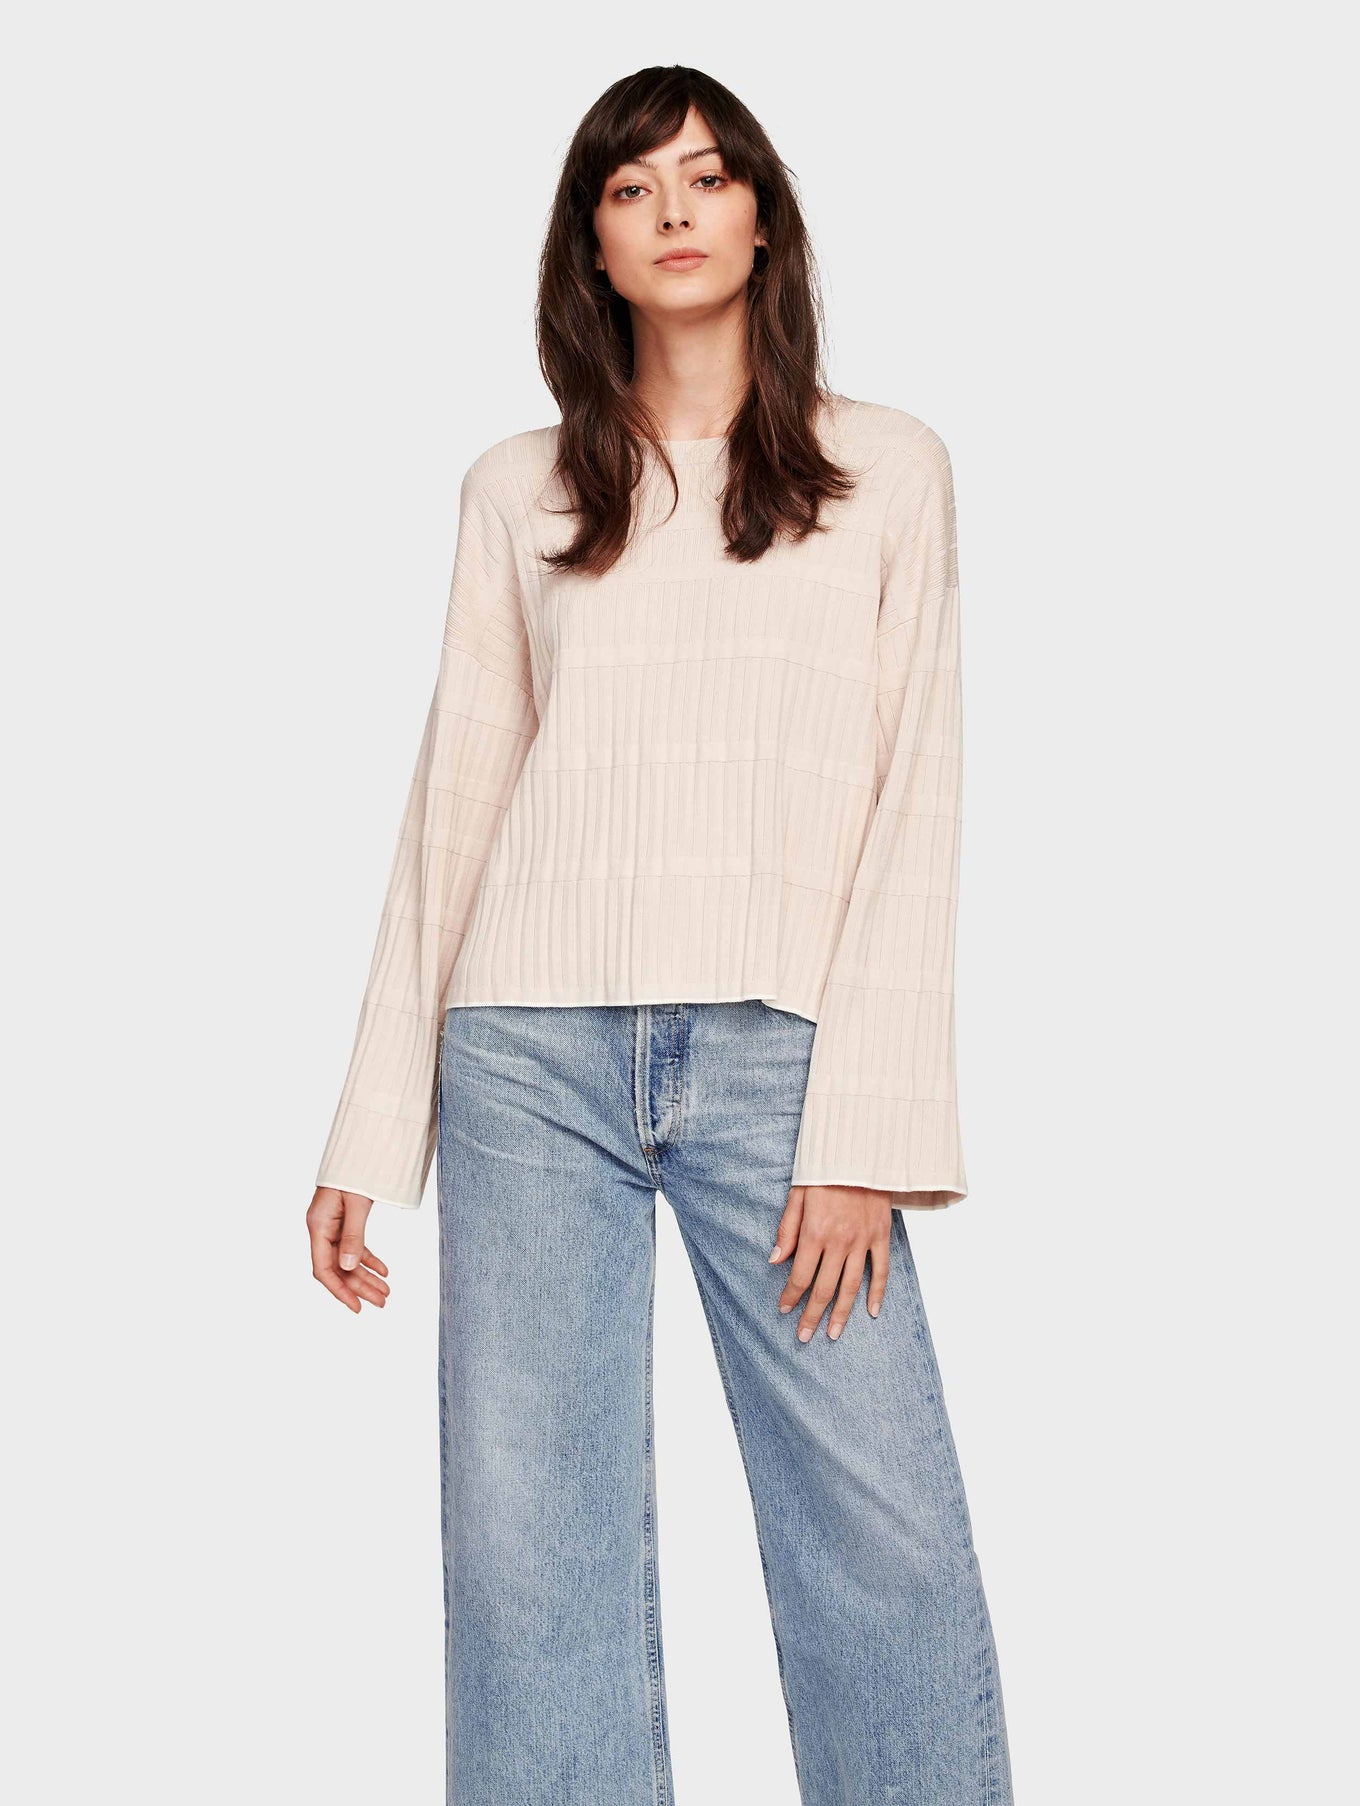 Fine Gauge Stretch Pleated Stitch Tipped Crewneck - Blush/Cream - Image 1